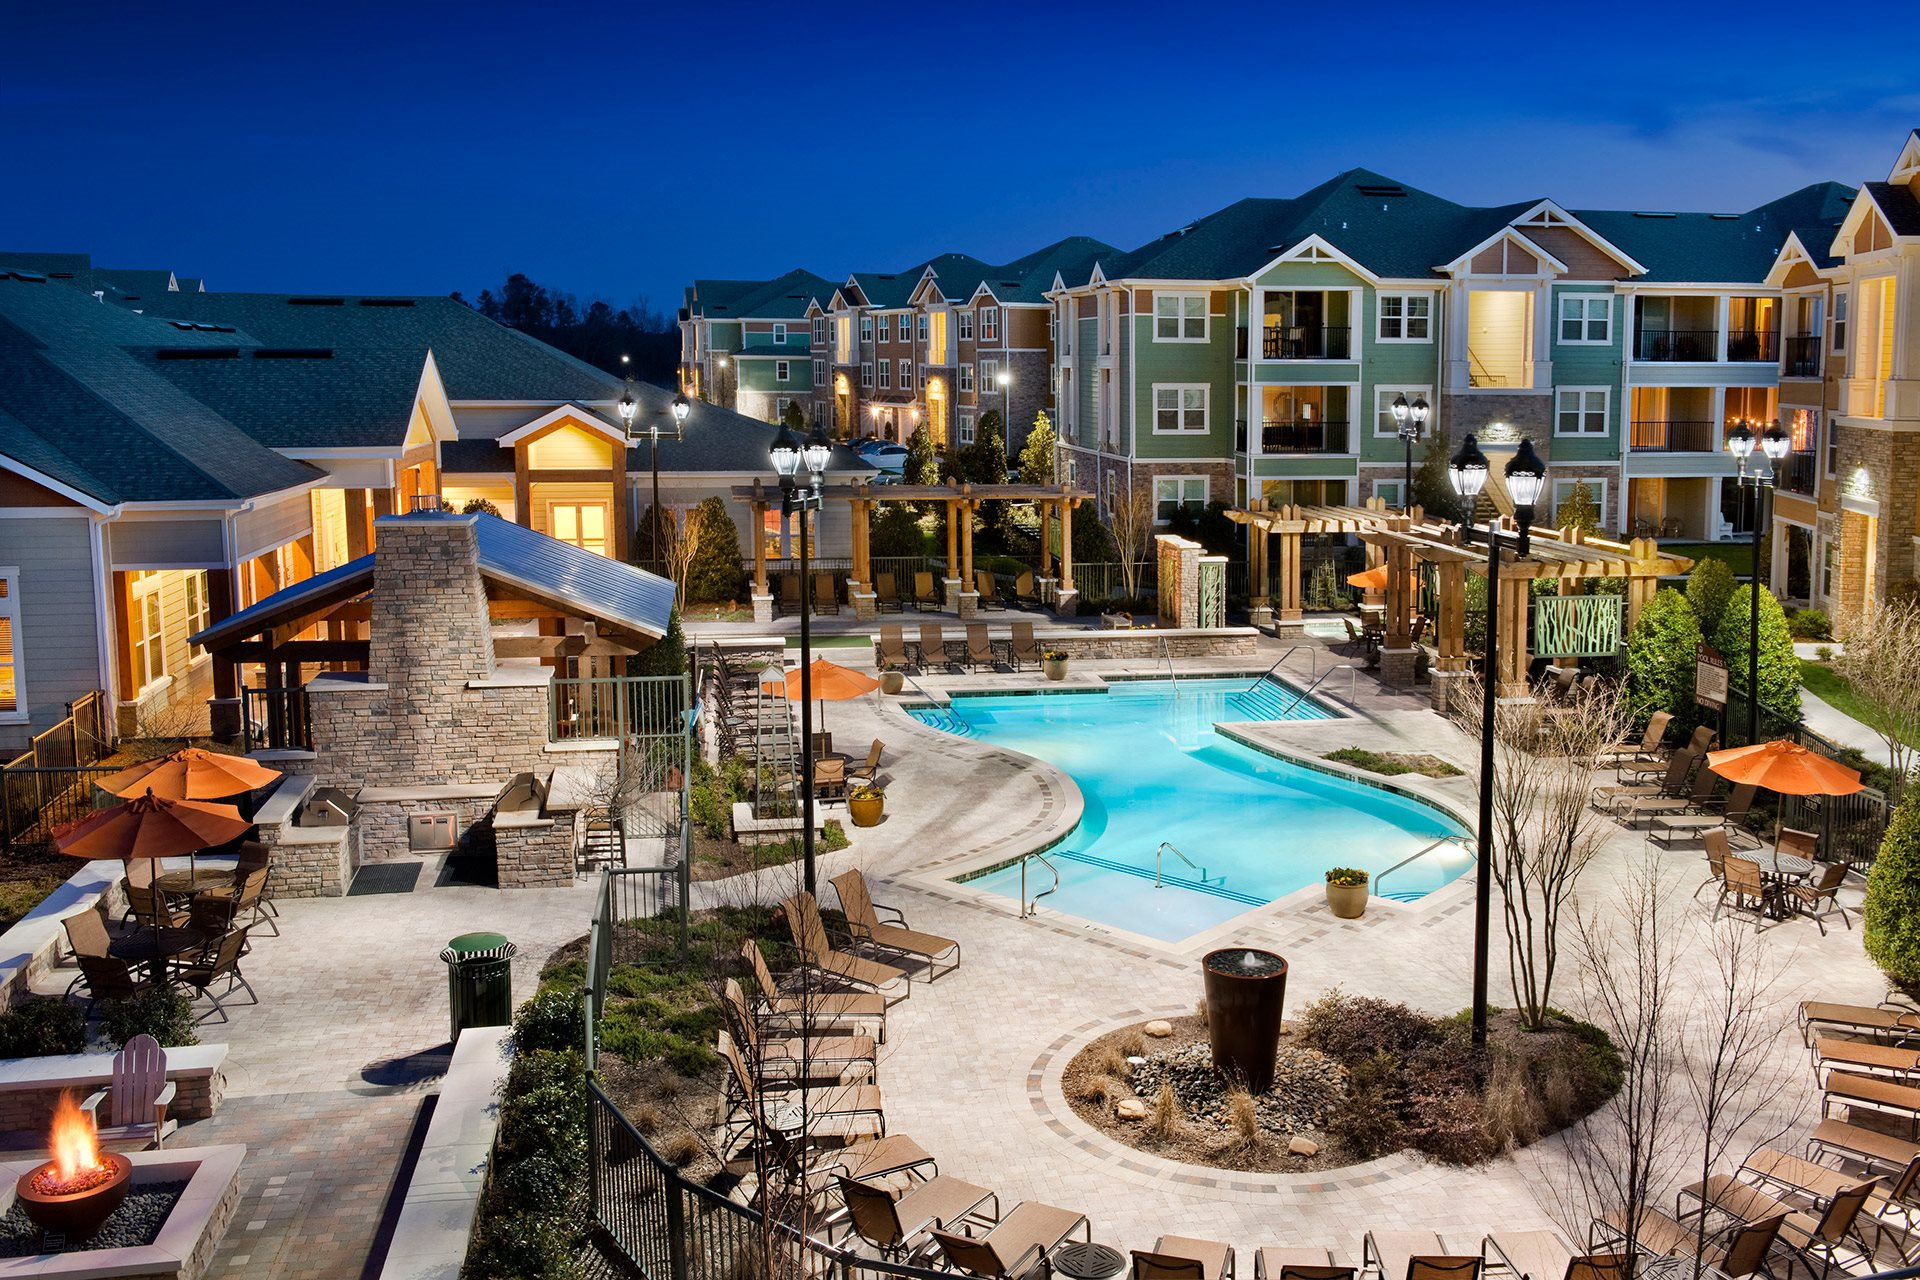 Pool With Sunning Deck at Jamison at Brier Creek, Raleigh, NC